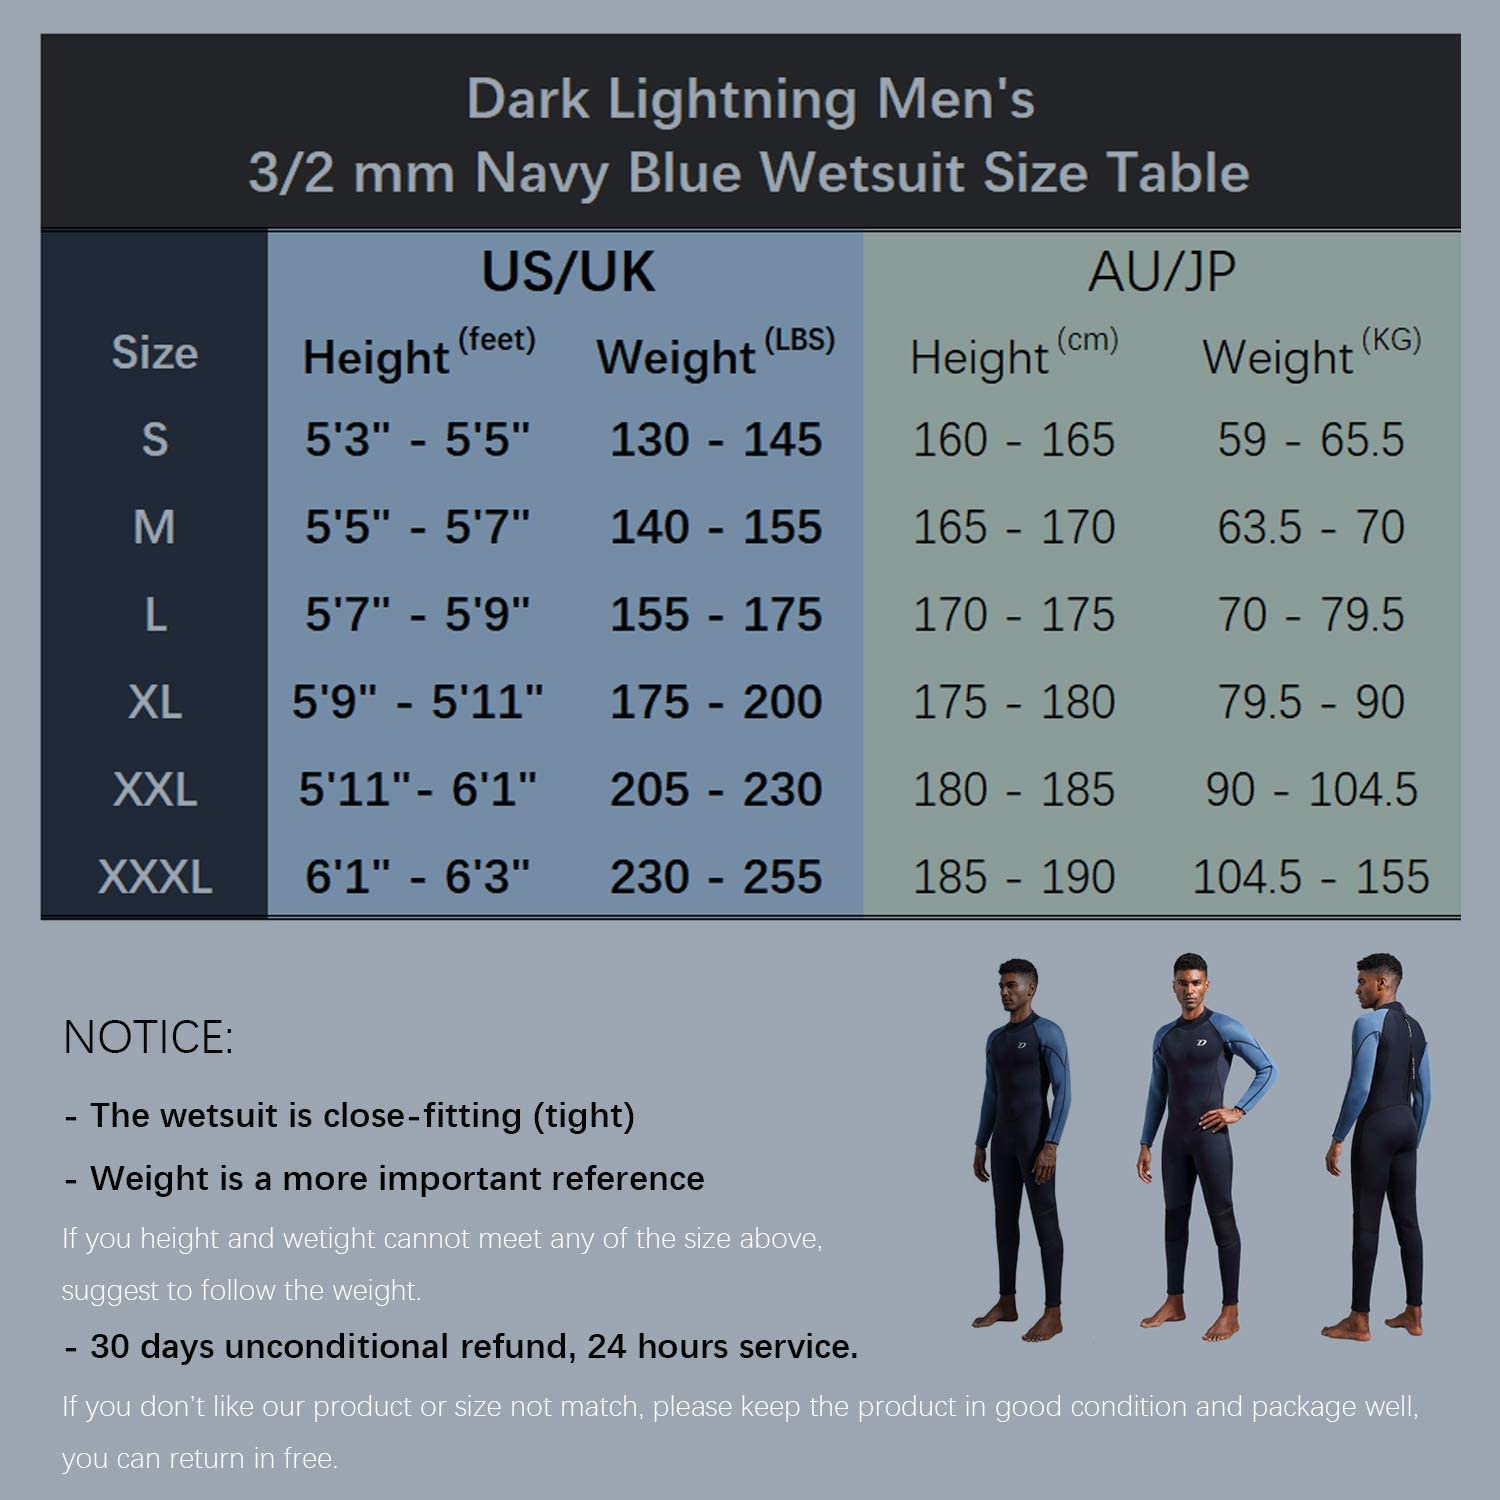 Dark Lightning Premium CR Neoprene Wetsuit, Women and Mens Full Suit Scuba Diving Thermal Wetsuit in 3 2mm and 5 4mm